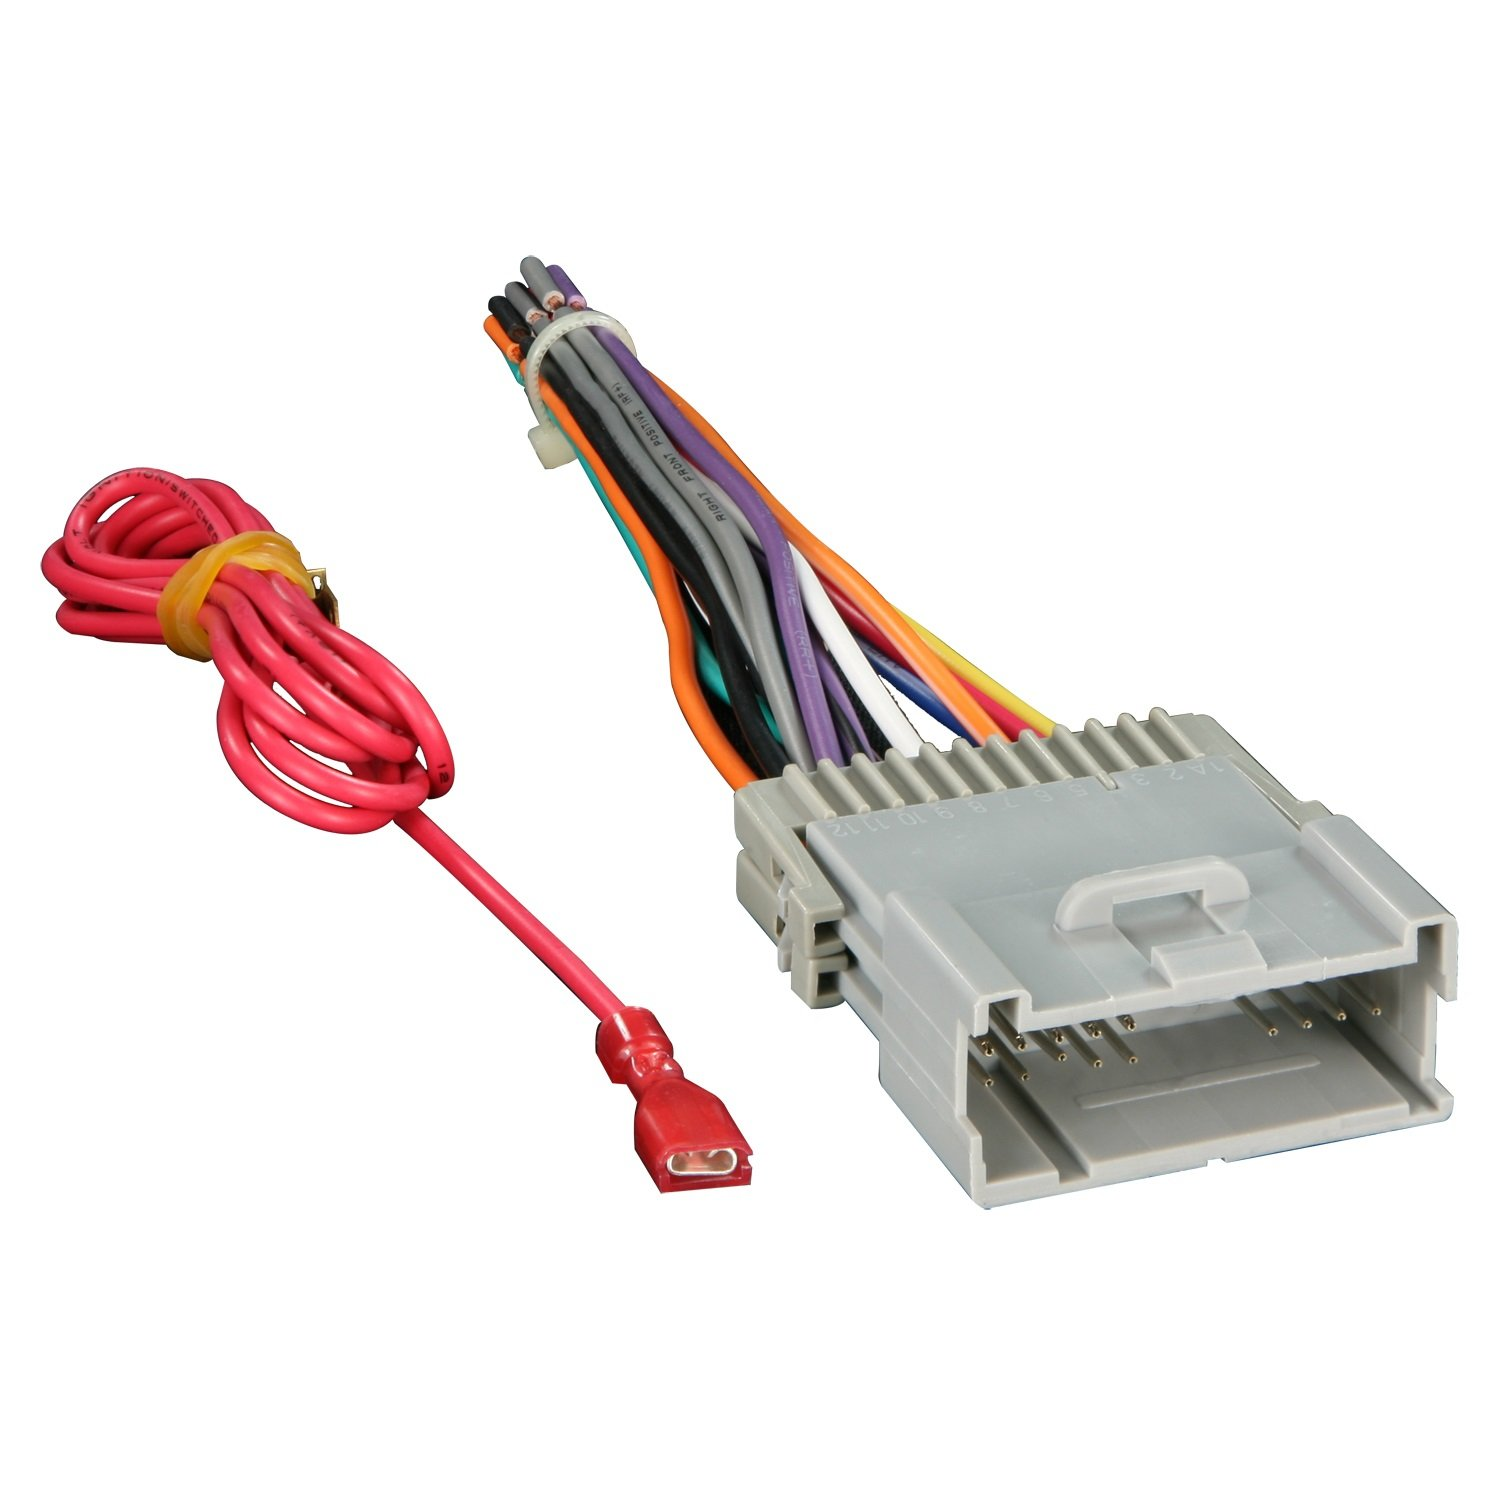 61eewxp9orL._SL1500_ amazon com metra 70 2003 radio wiring harness for gm 98 08 factory to aftermarket radio wiring harness at aneh.co